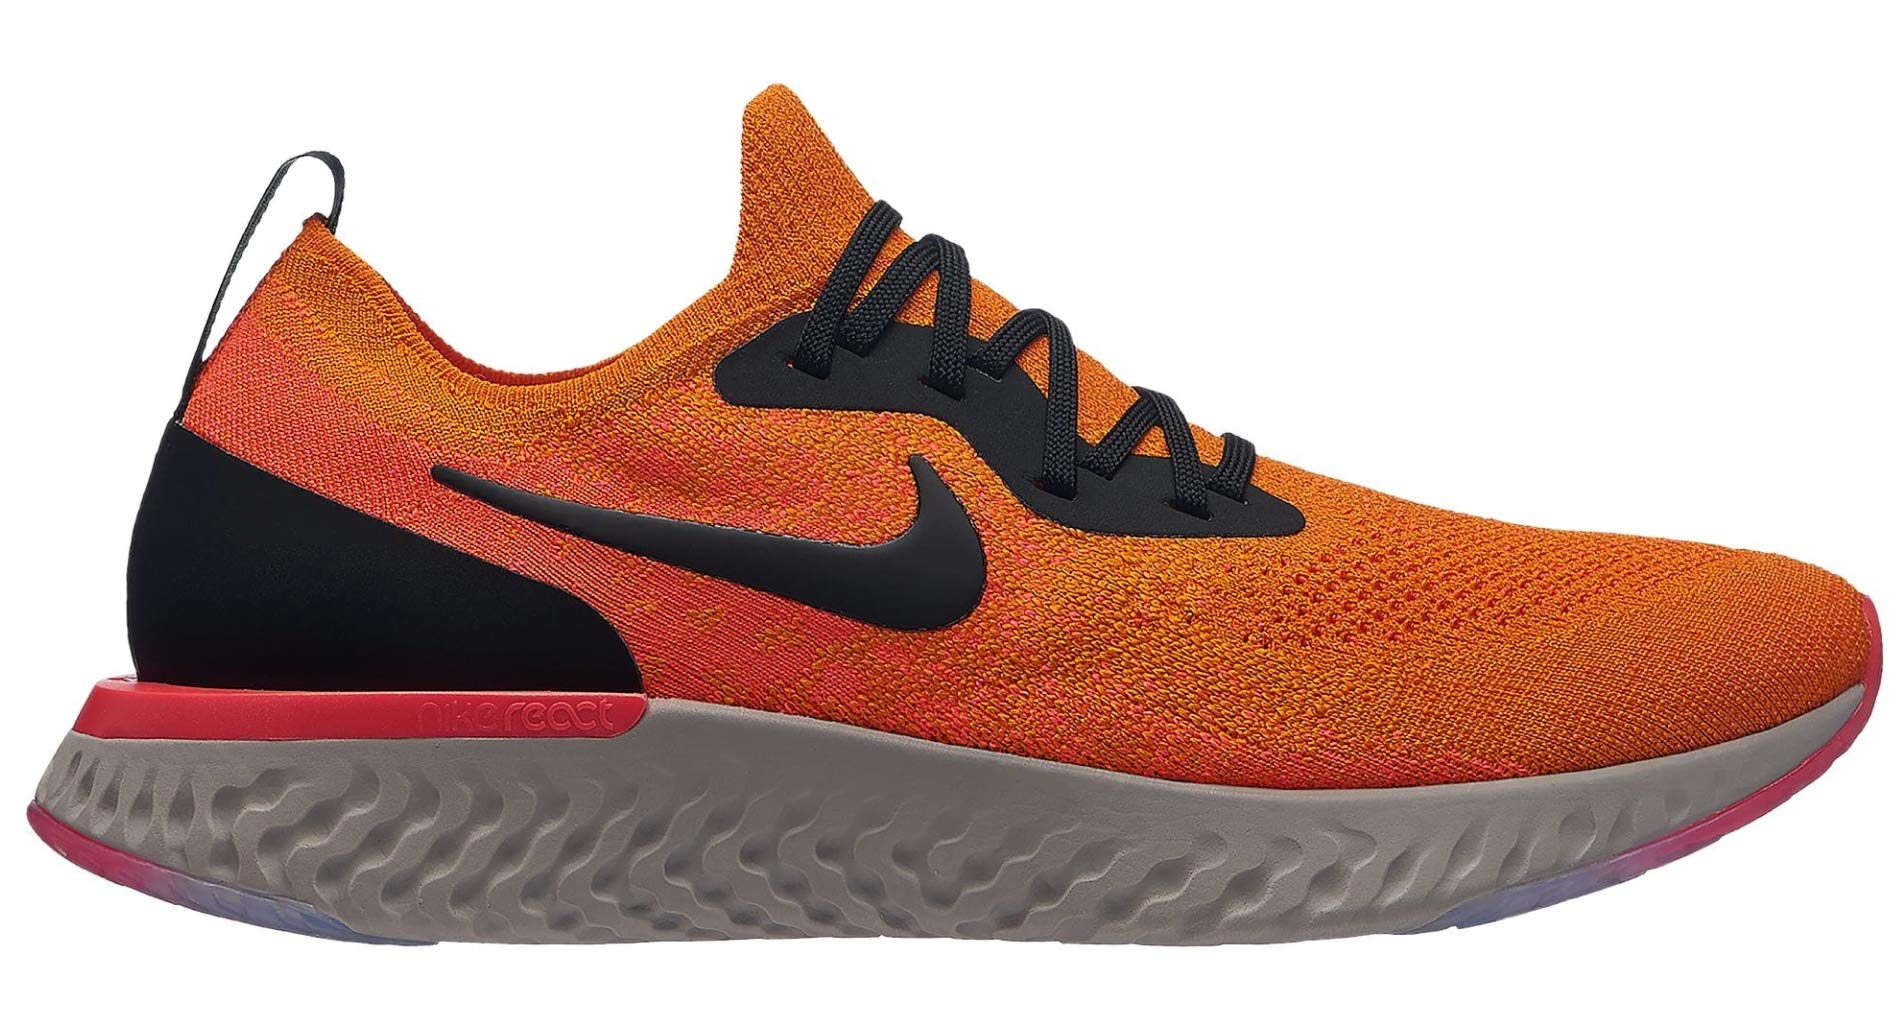 80c082da24a3d Nike Men's Epic React Flyknit Competition Running Shoes